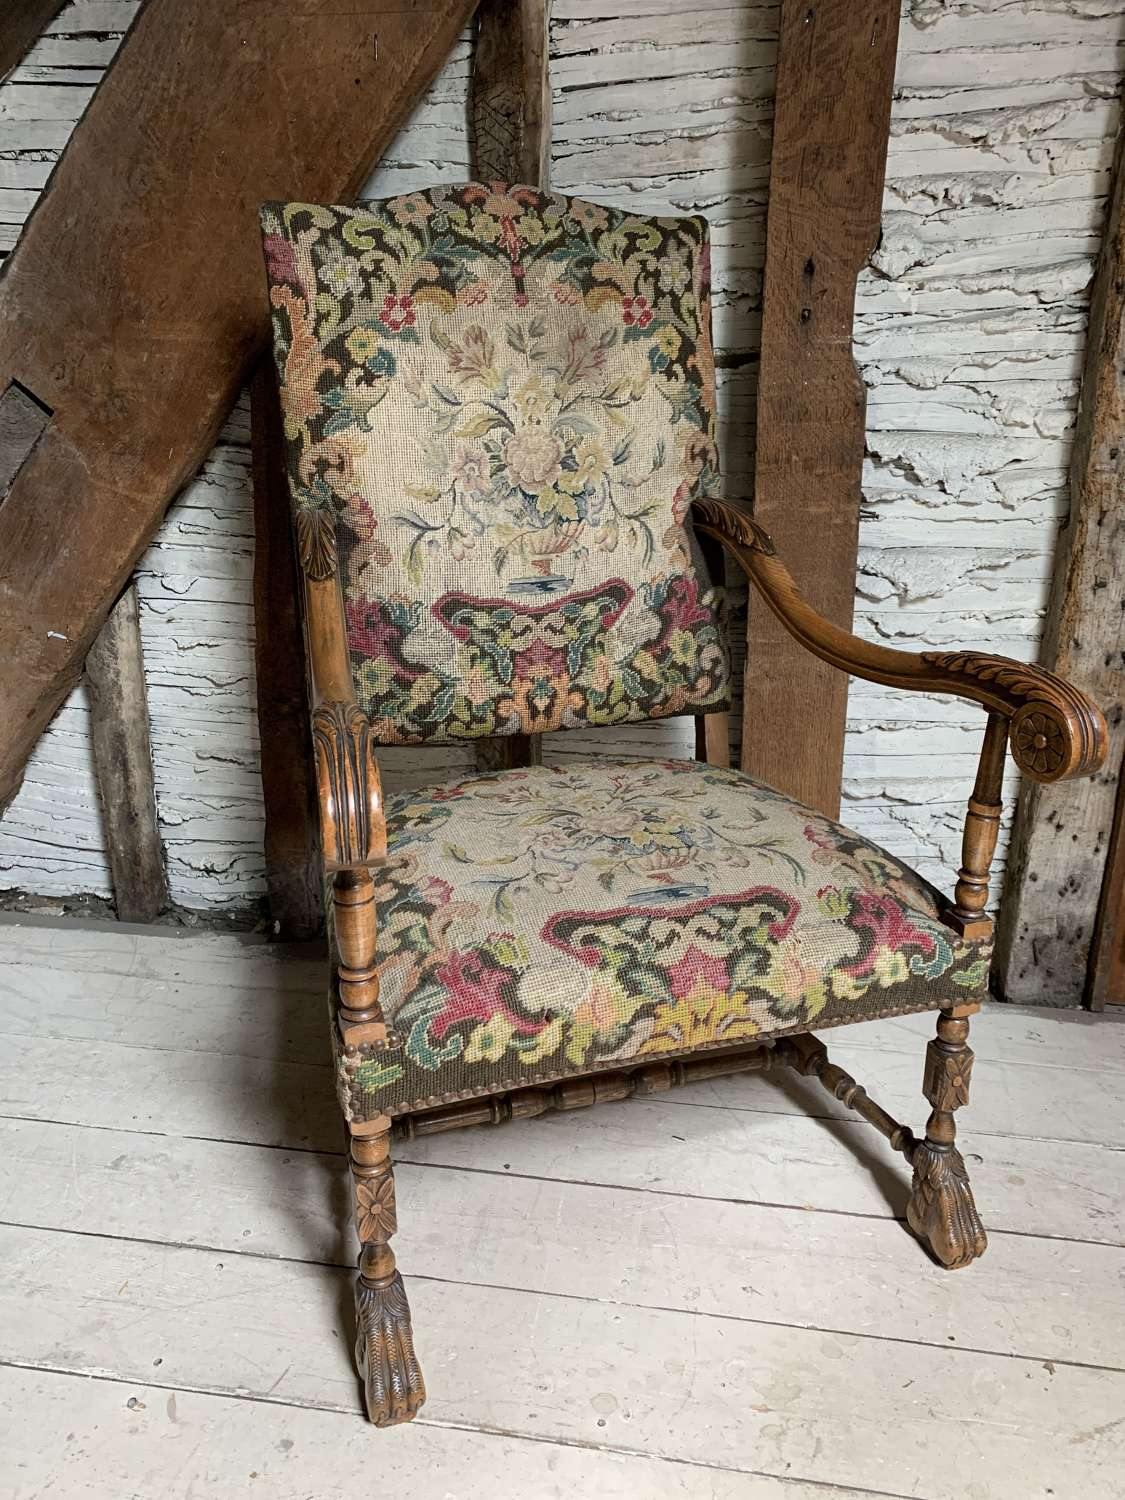 Carolean Style Armchair with Needlework Upholstery